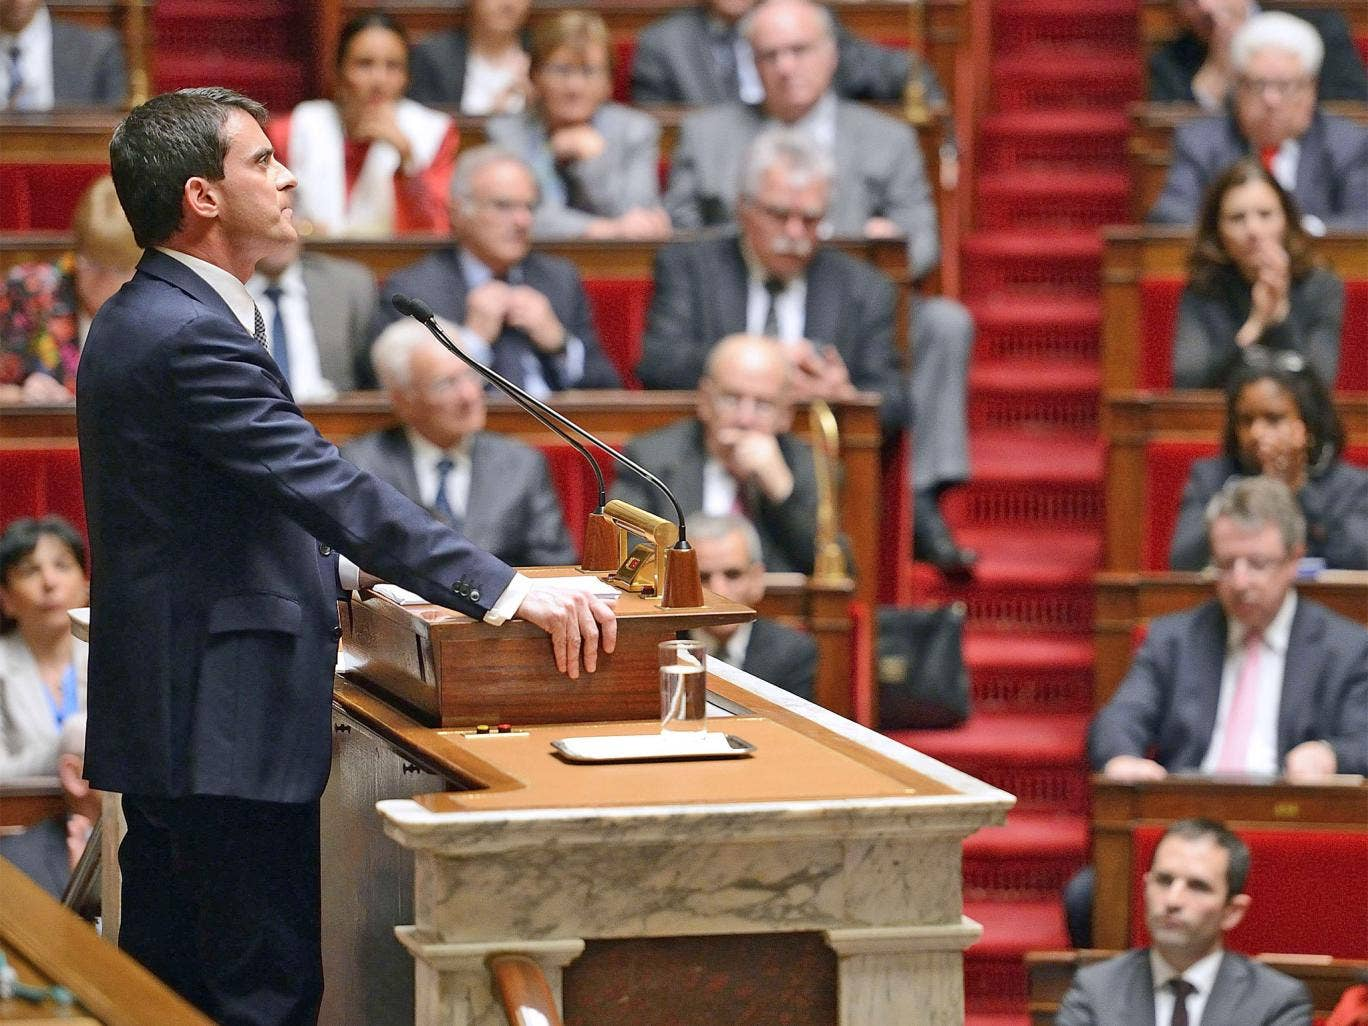 Mr Valls said austerity was 'counter-productive'